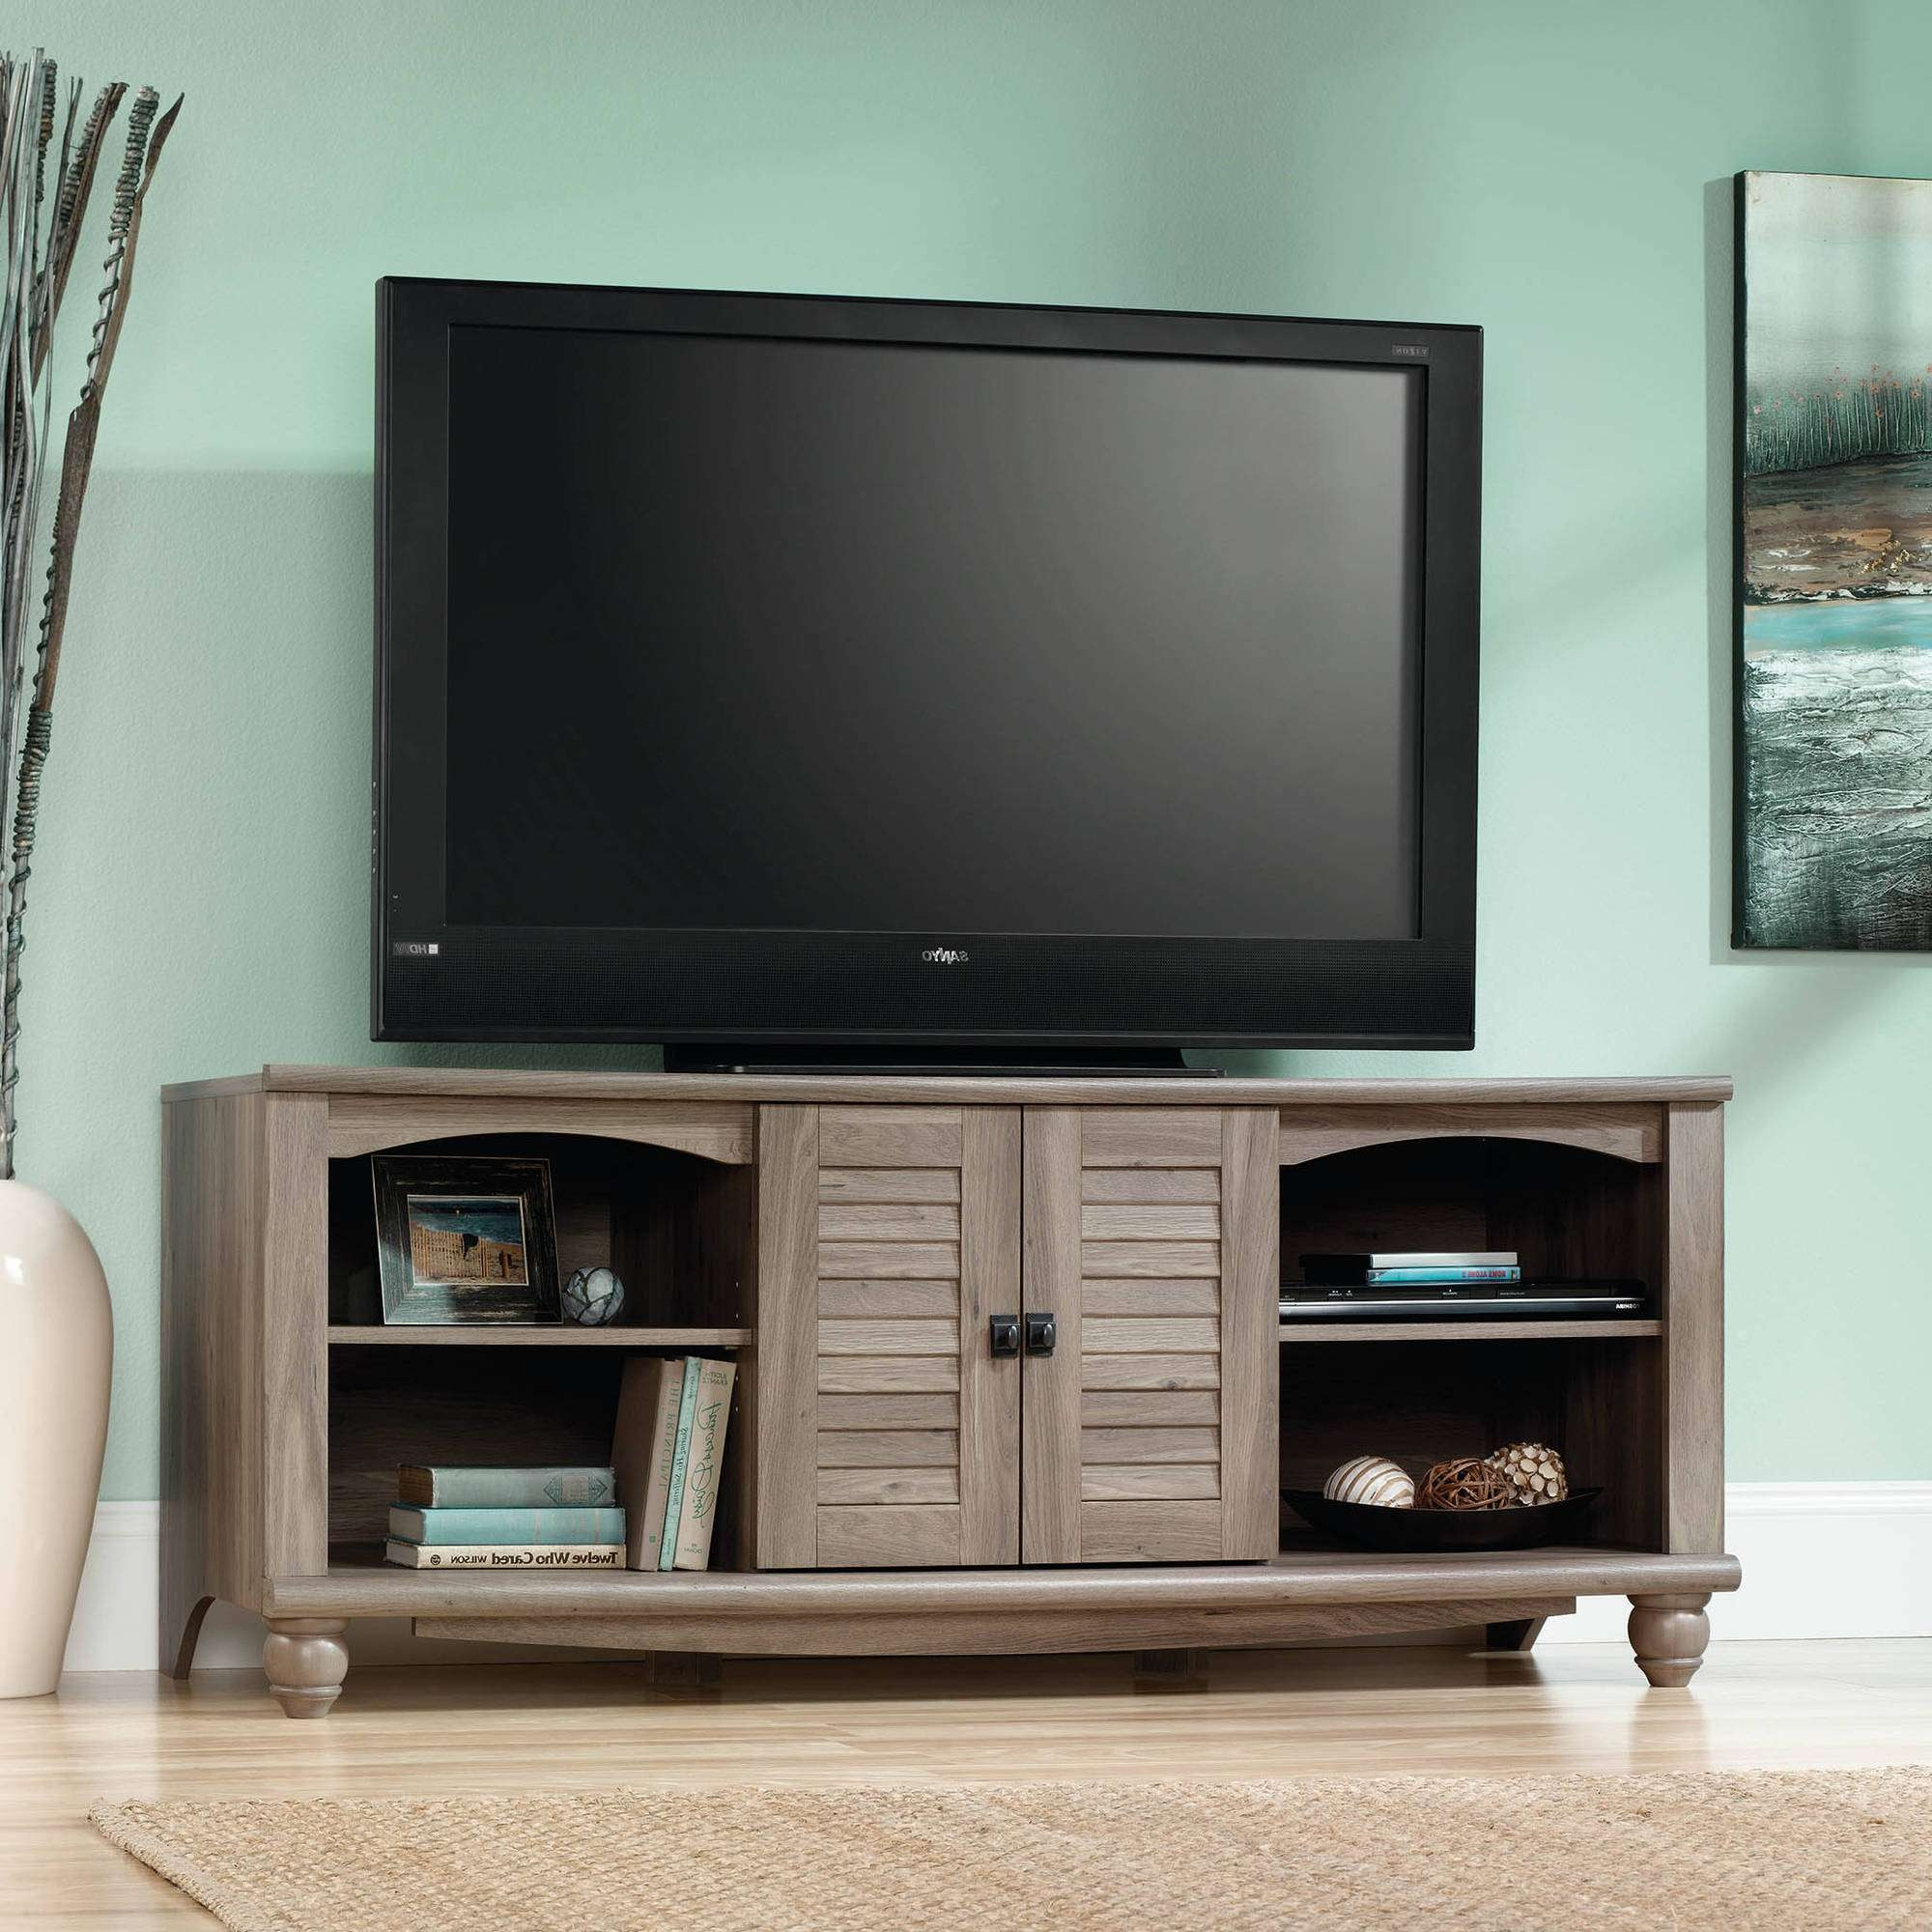 Furnitures : Corner Tv Stand For Inch Flat Screen Appealing On Pertaining To Corner Tv Stands For 60 Inch Flat Screens (View 9 of 15)